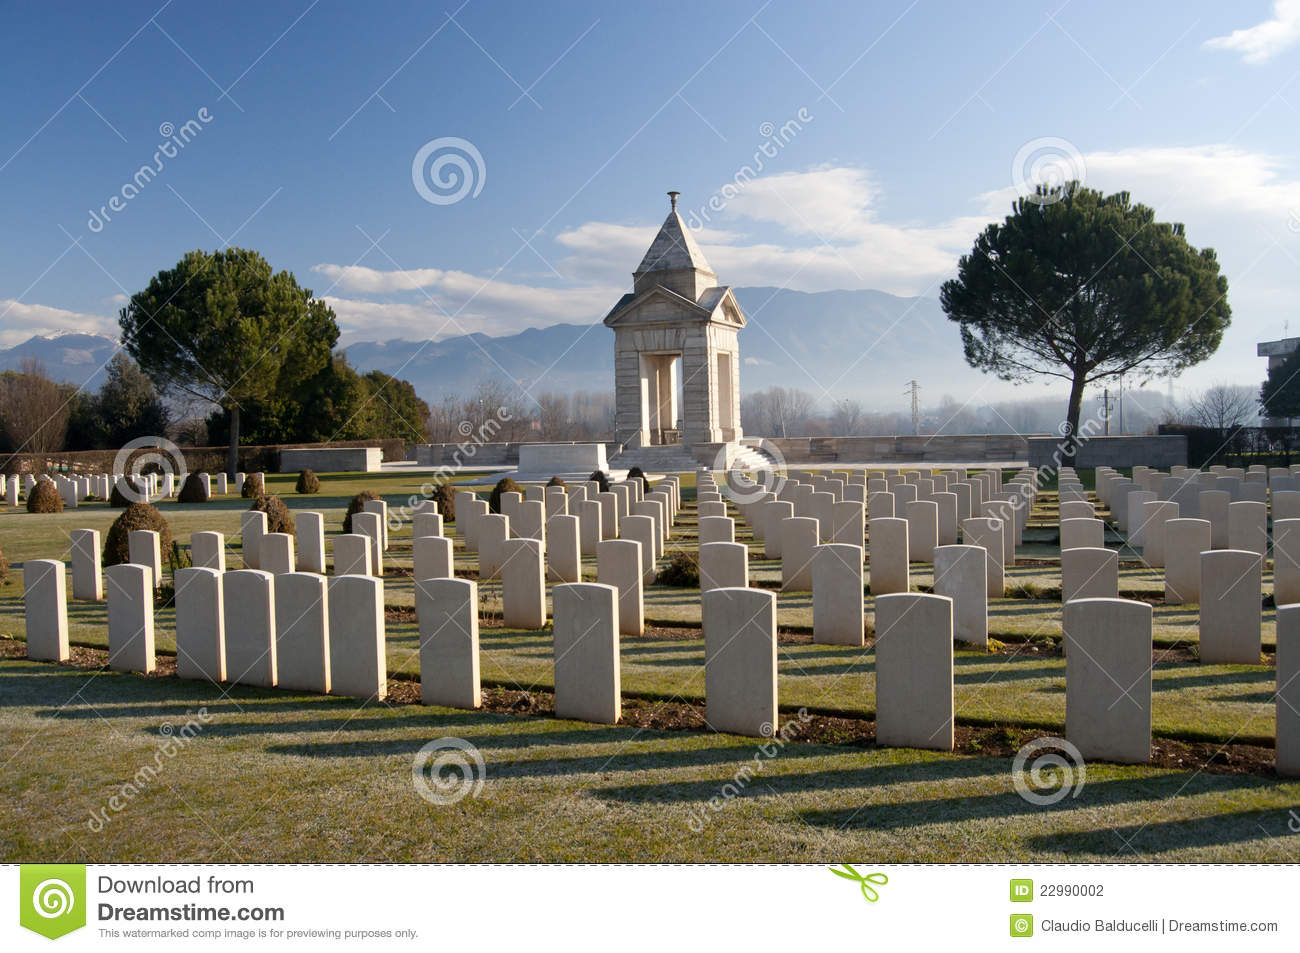 Headstones in War Cemetery